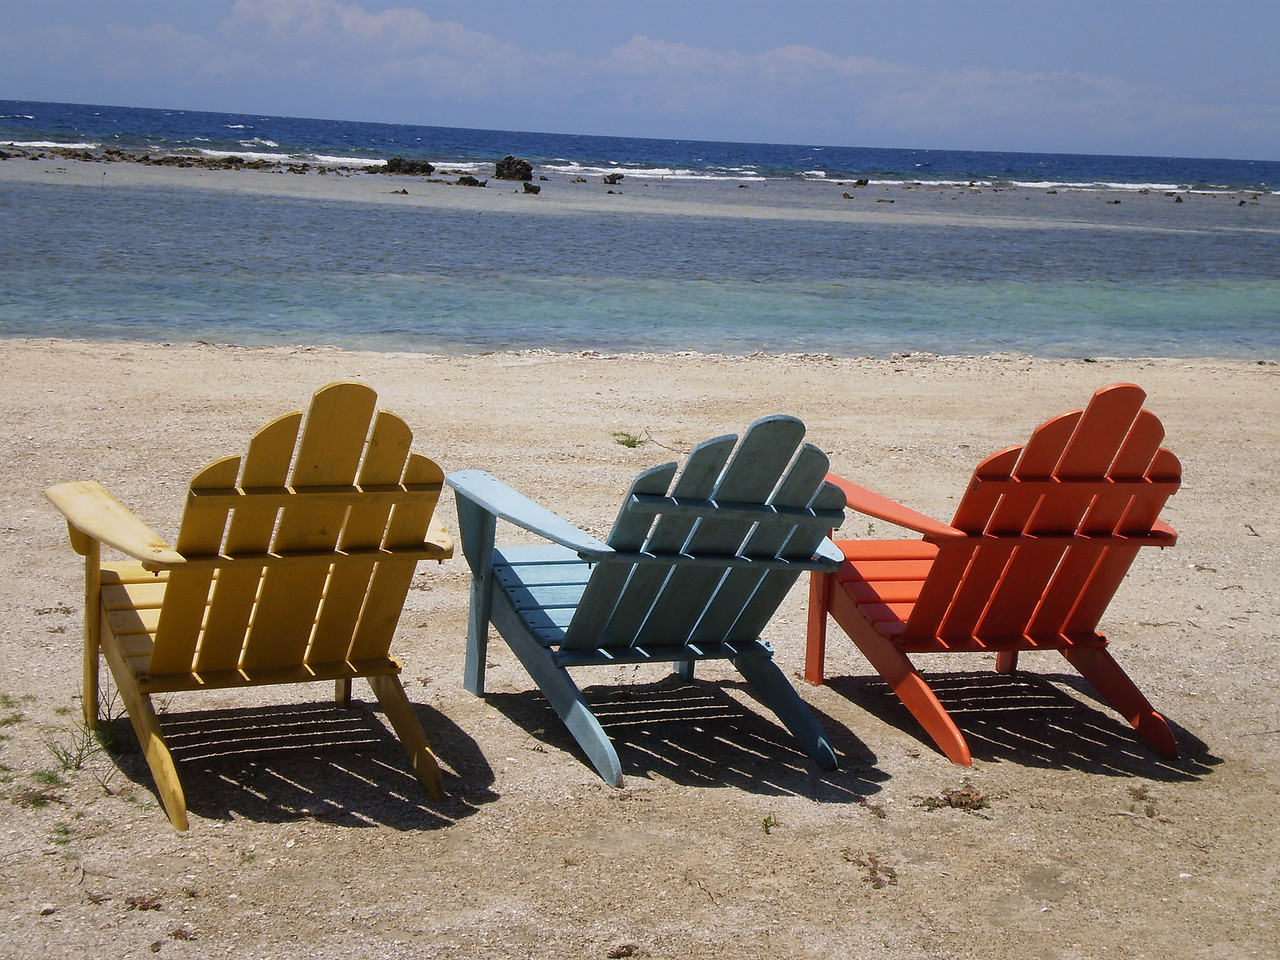 My beach chairs in early morning light!